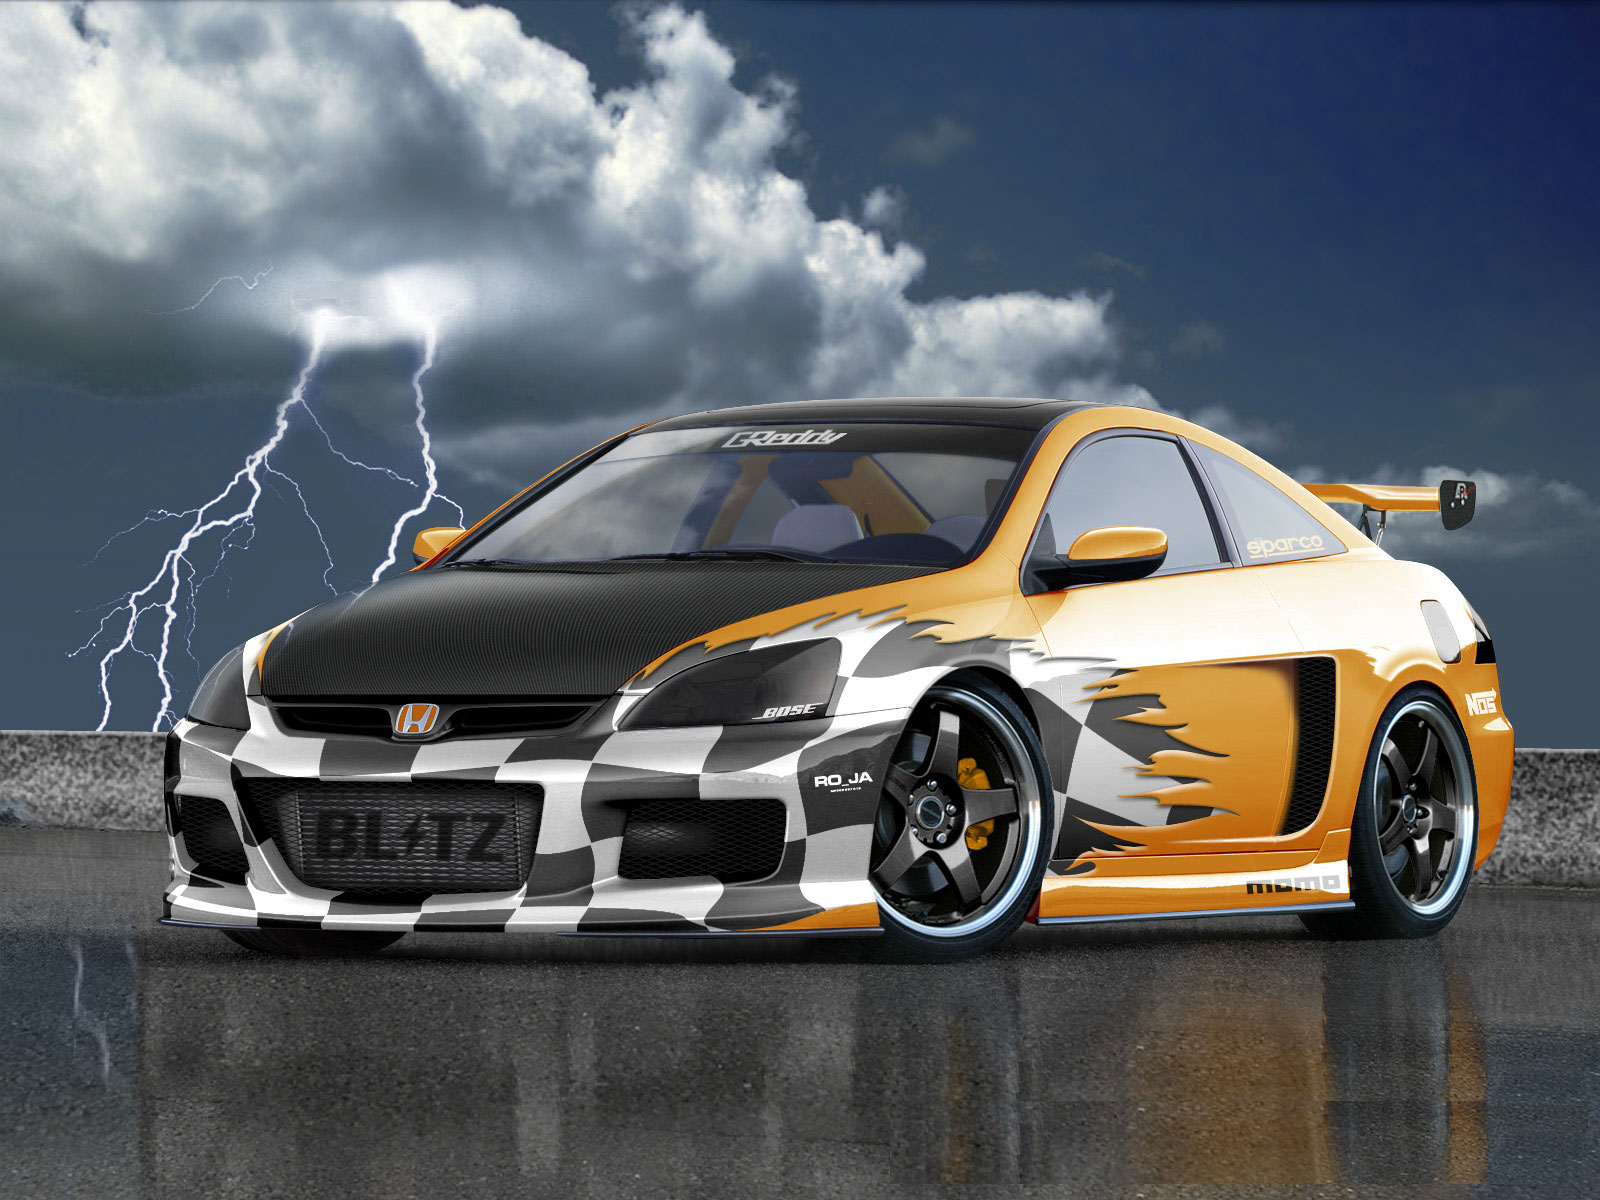 cool fast cars wallpapers Cool Car Wallpapers 1600x1200